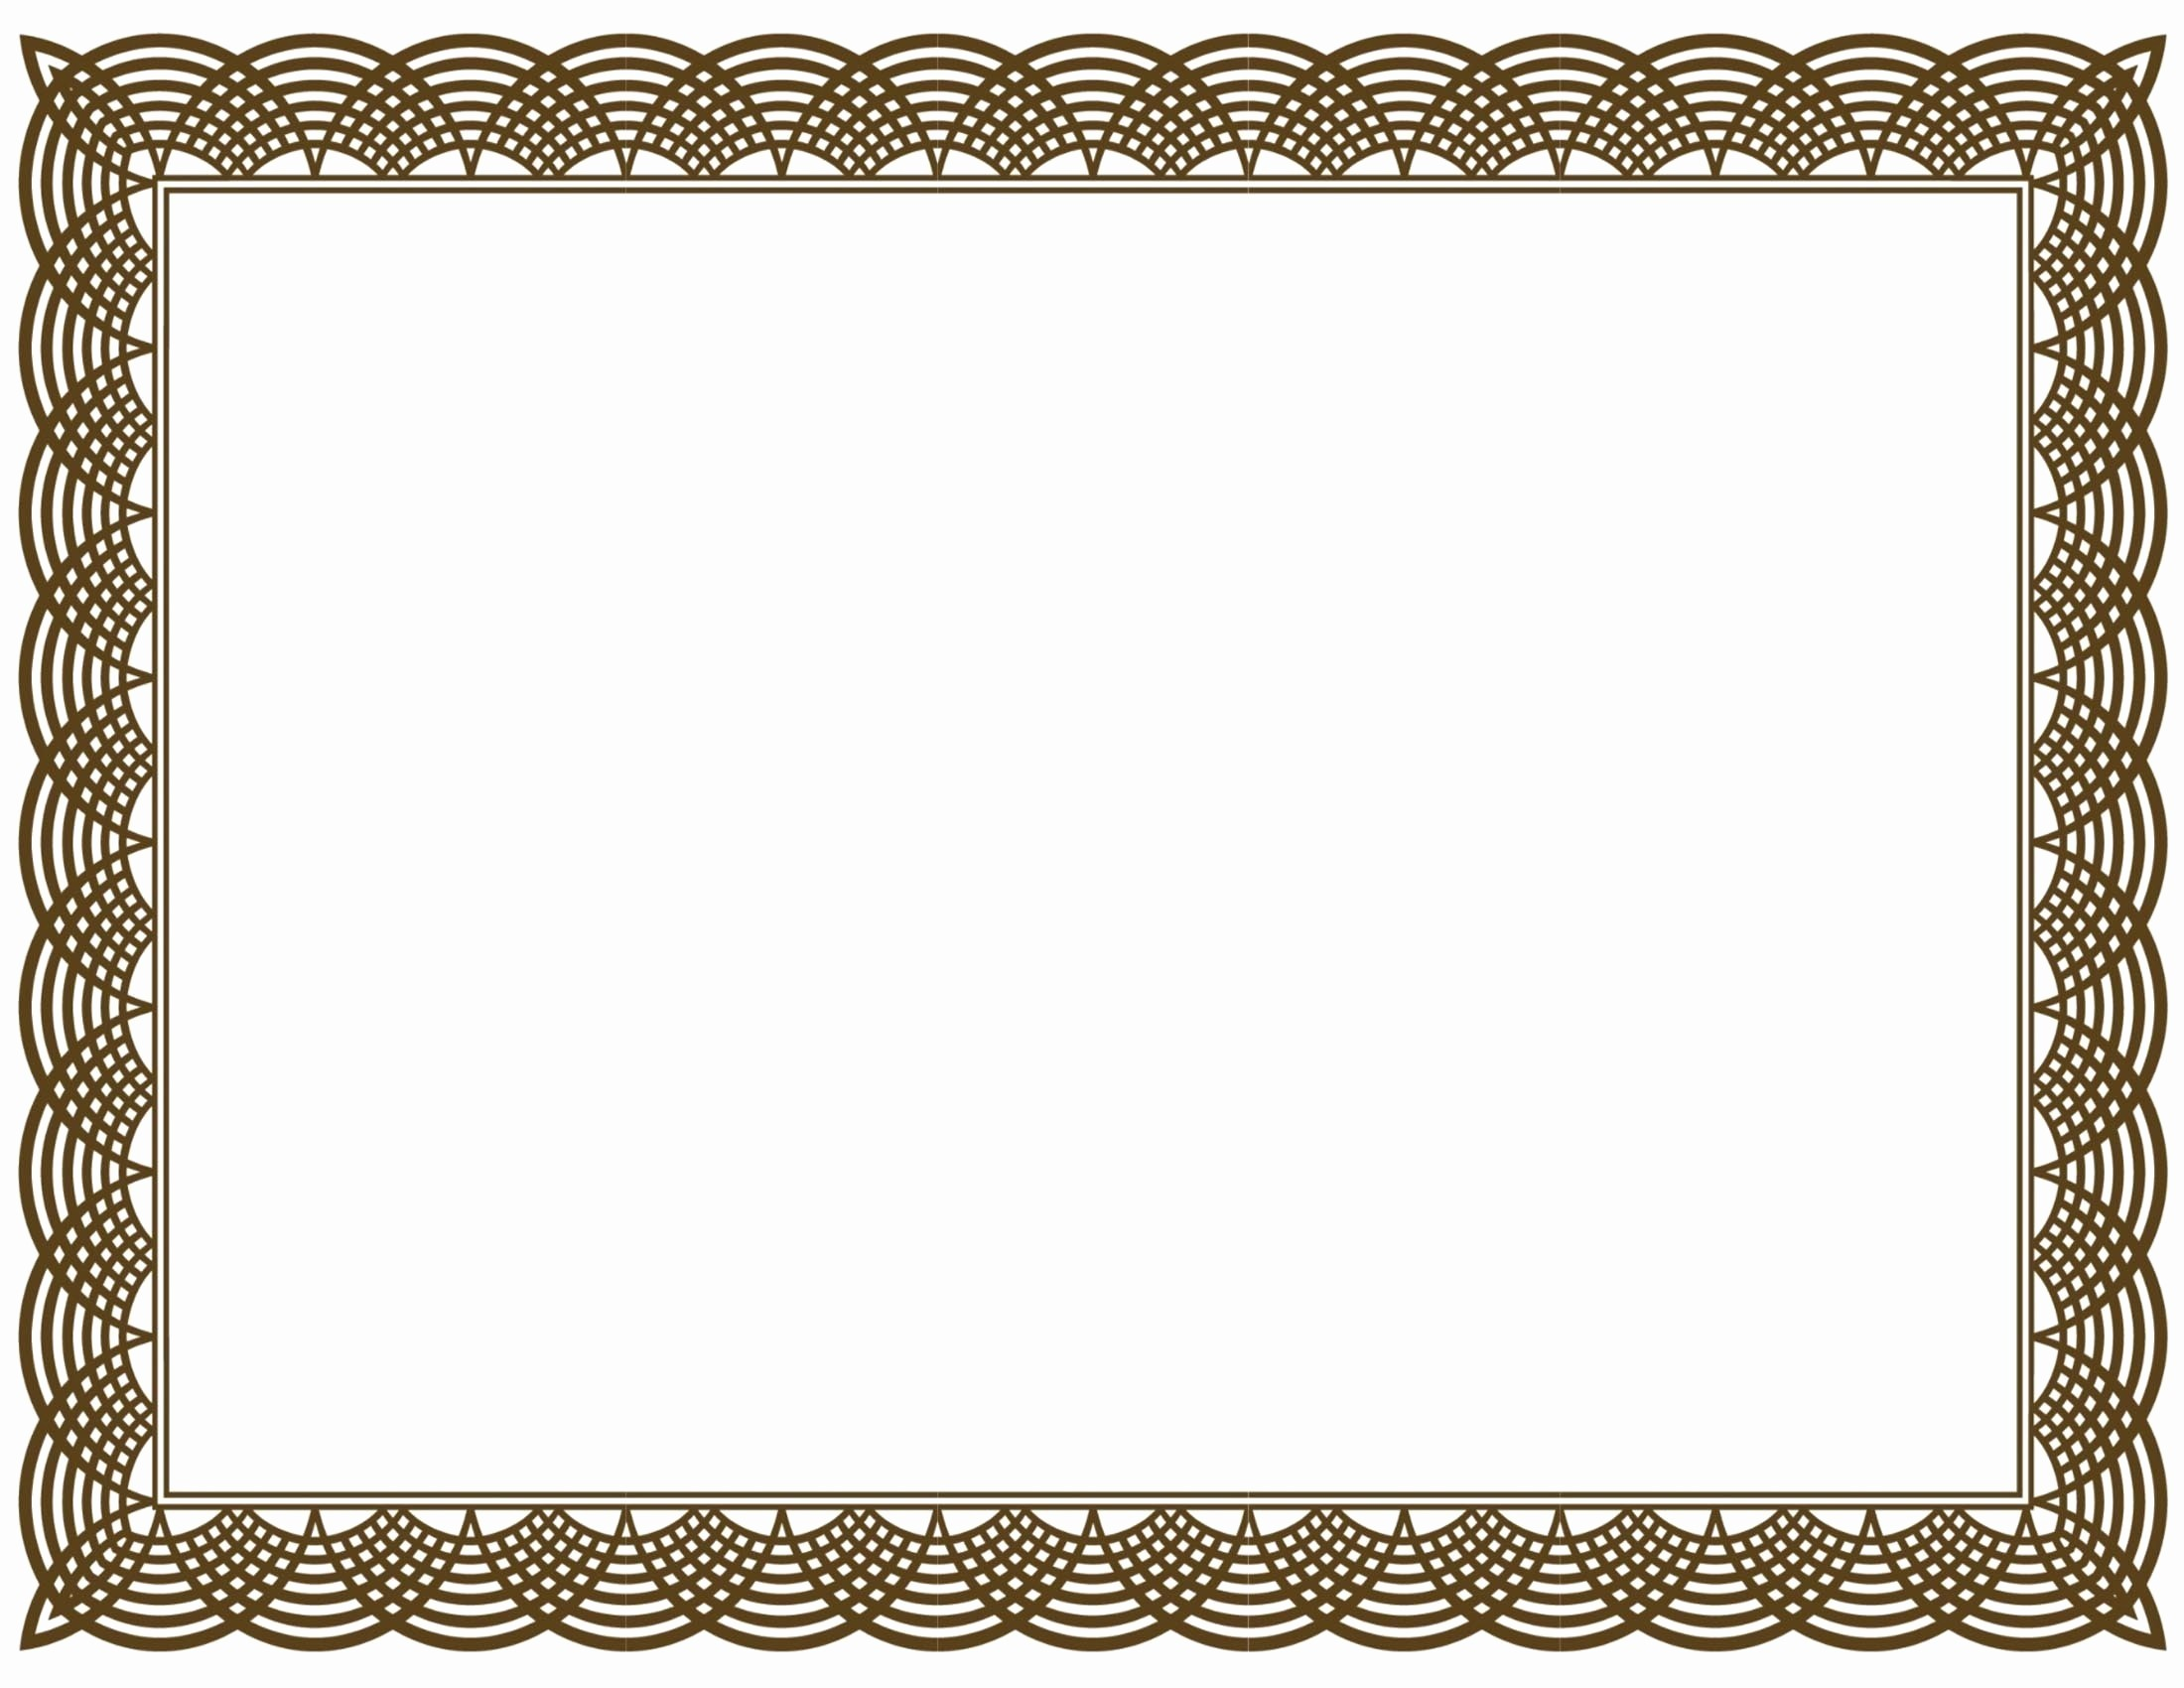 Certificate Border Template for Word Luxury Template Certificate Border Fresh Free Certificate Border